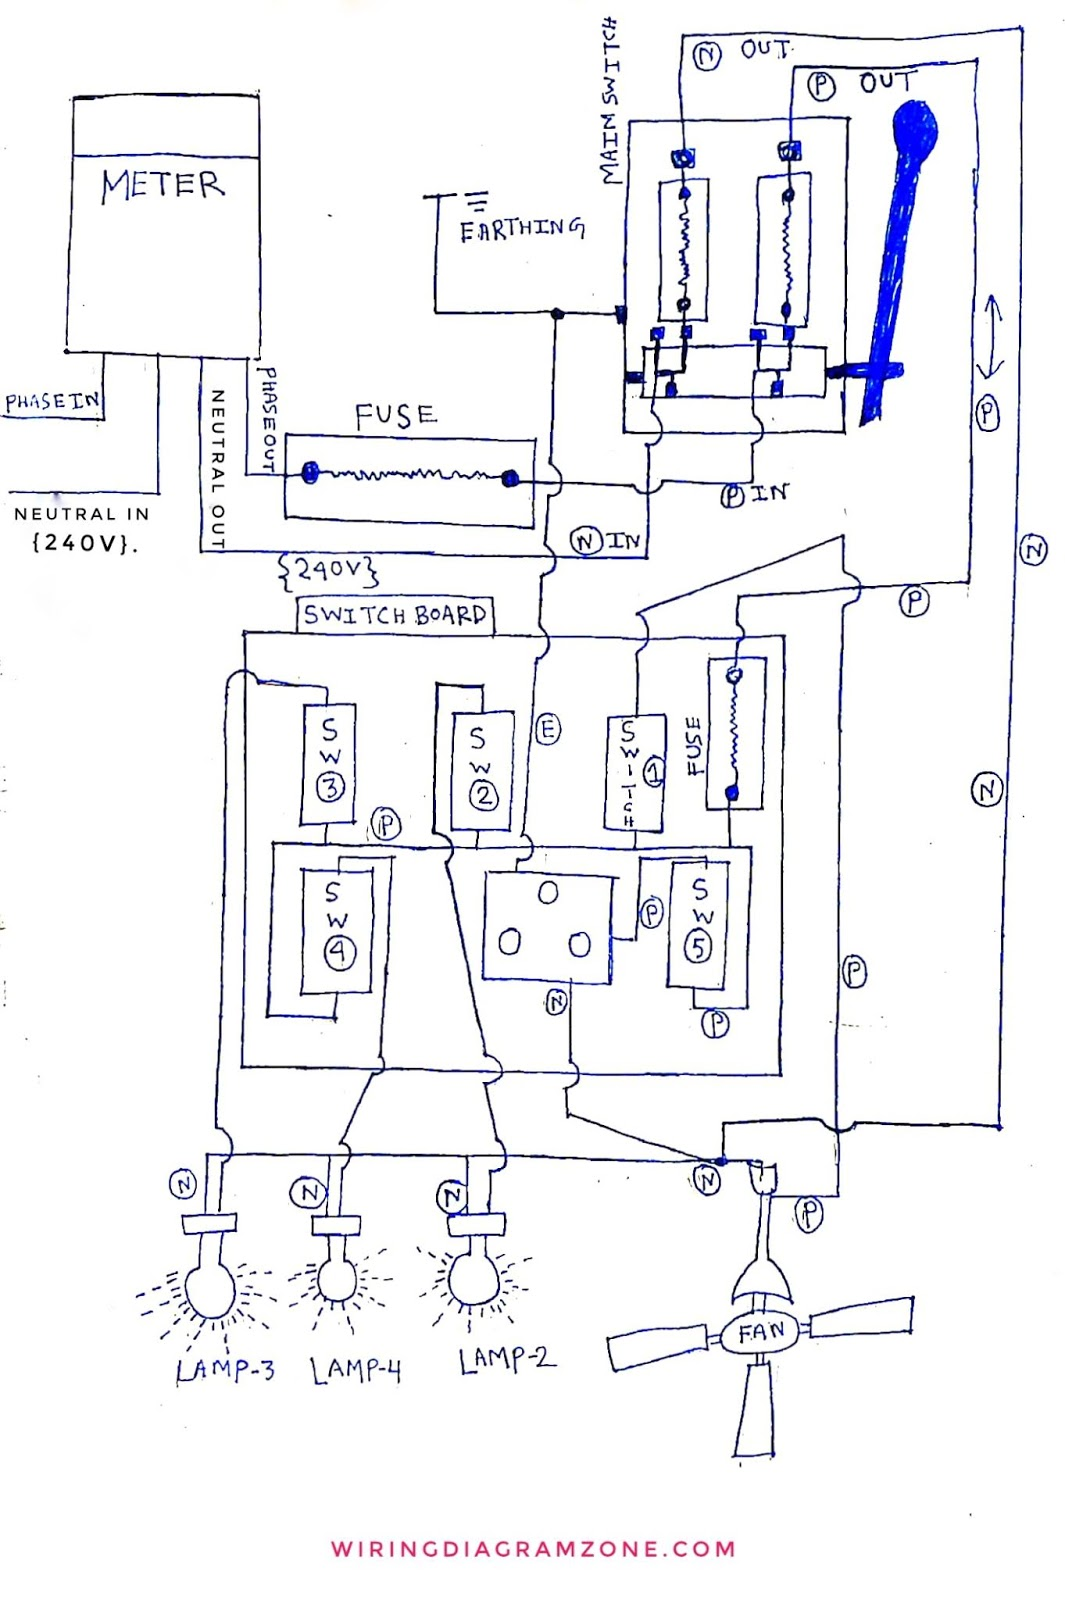 Circuit Diagram House Best Wiring Diagrams